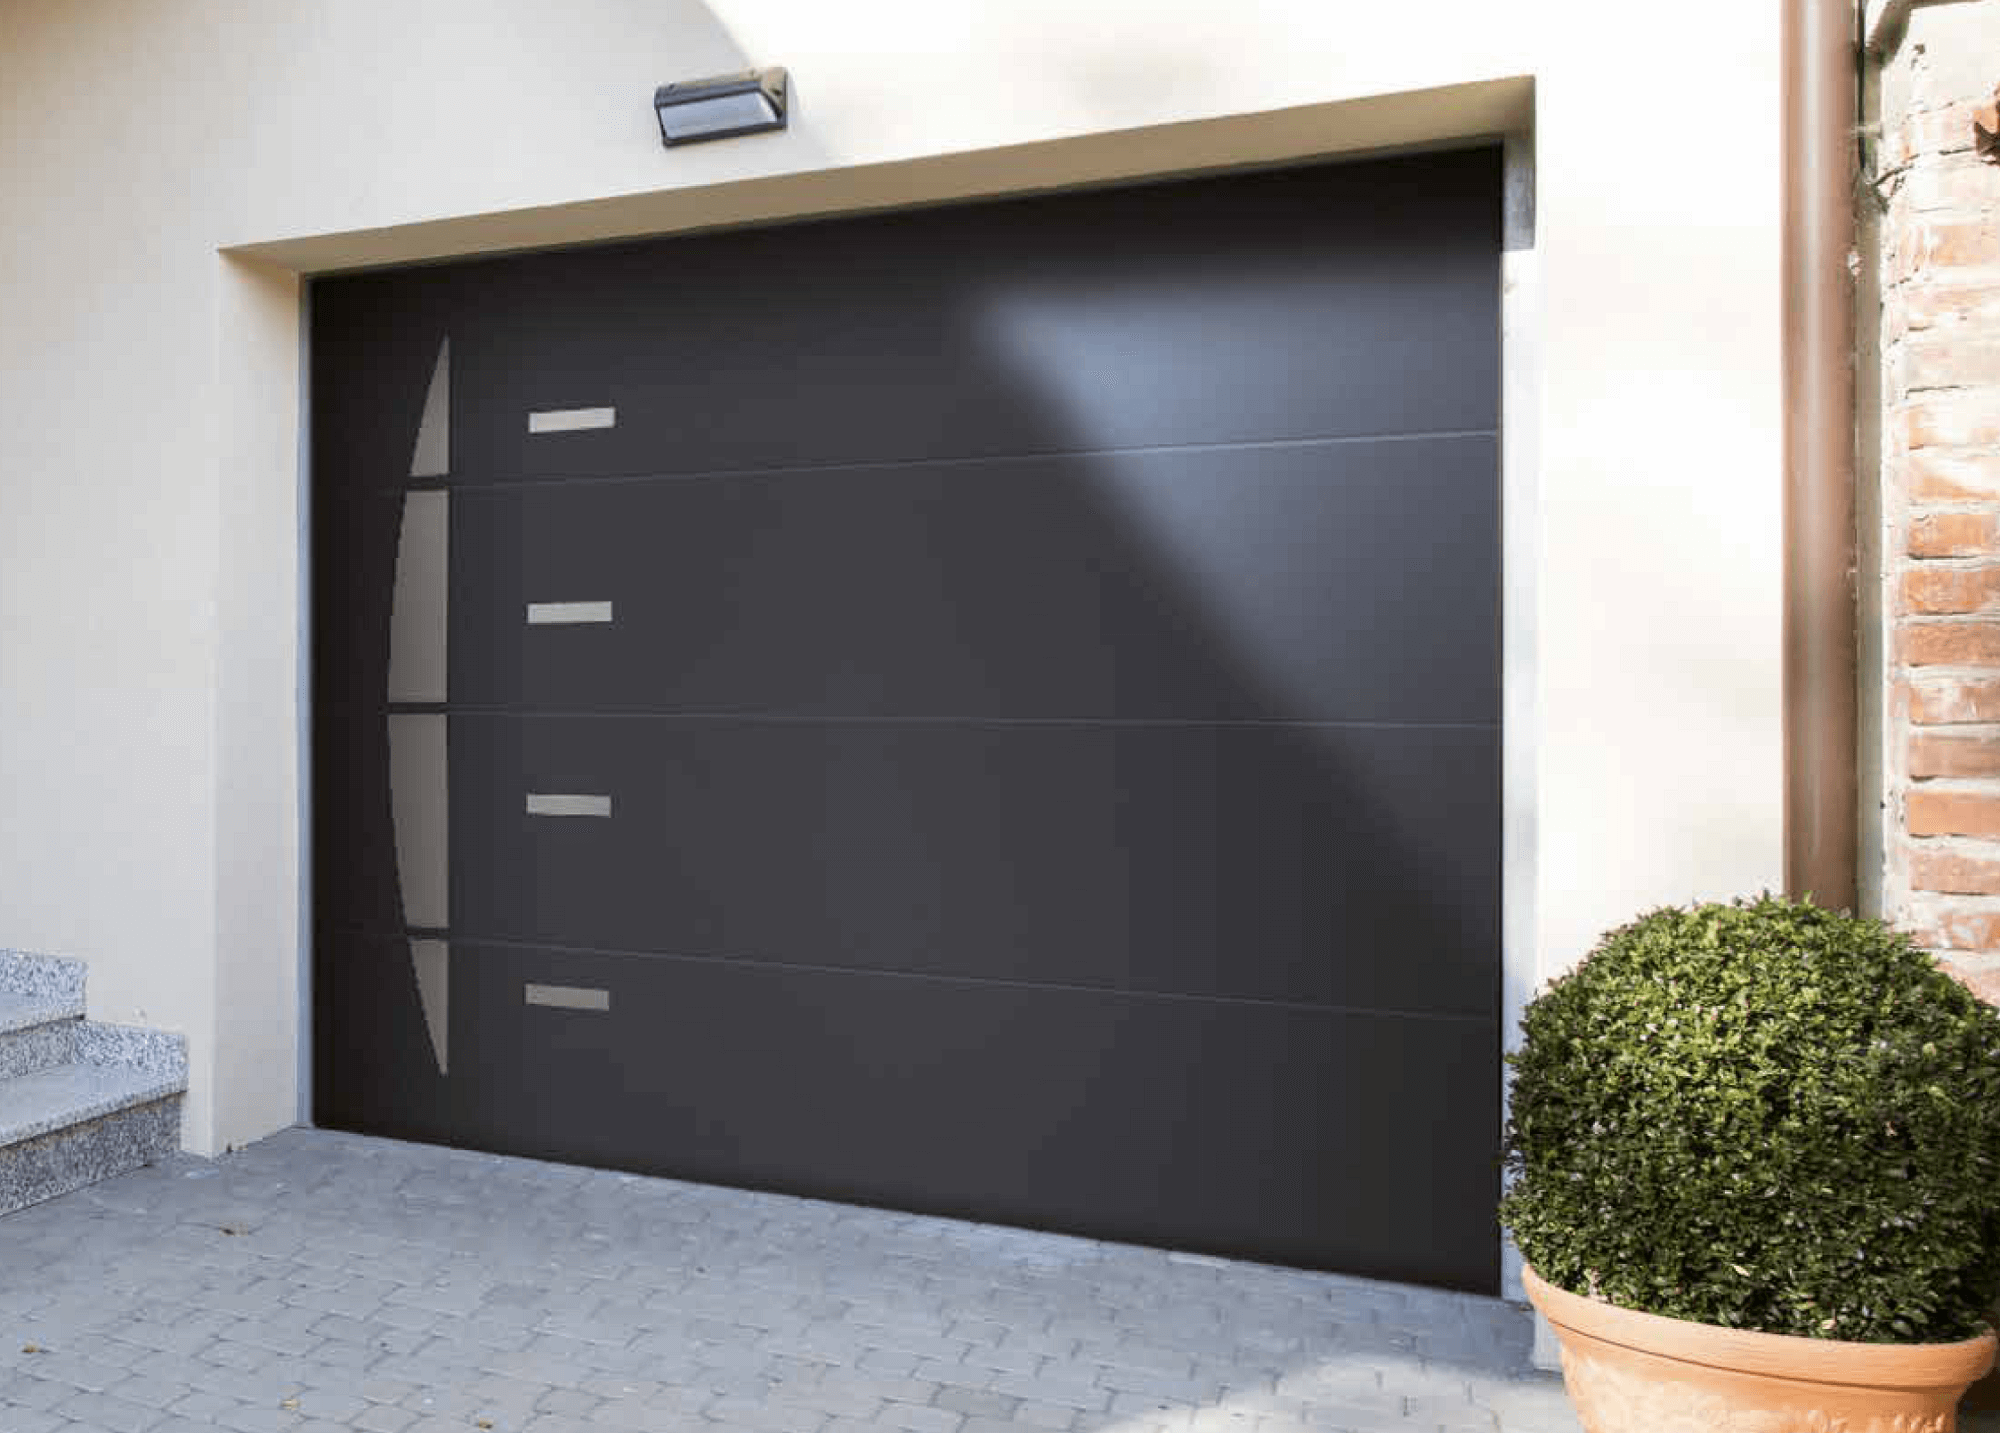 Porte de garage motoris e portes de garage sur mesure for Porte de garage sectionnelle avec portillon sur mesure